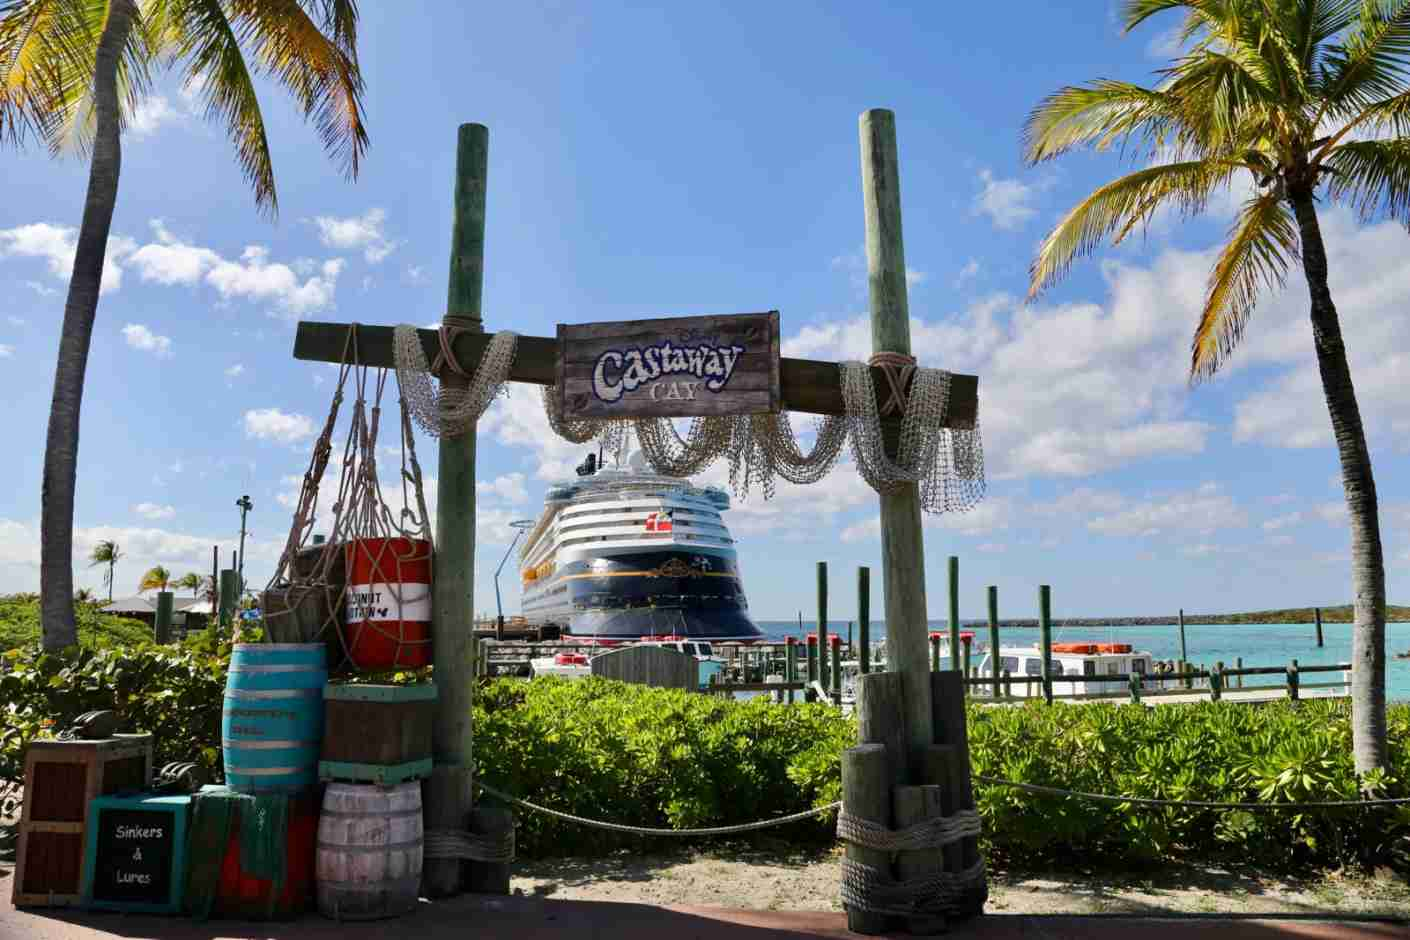 Castaway Cay Private Island Disney Cruise Lines